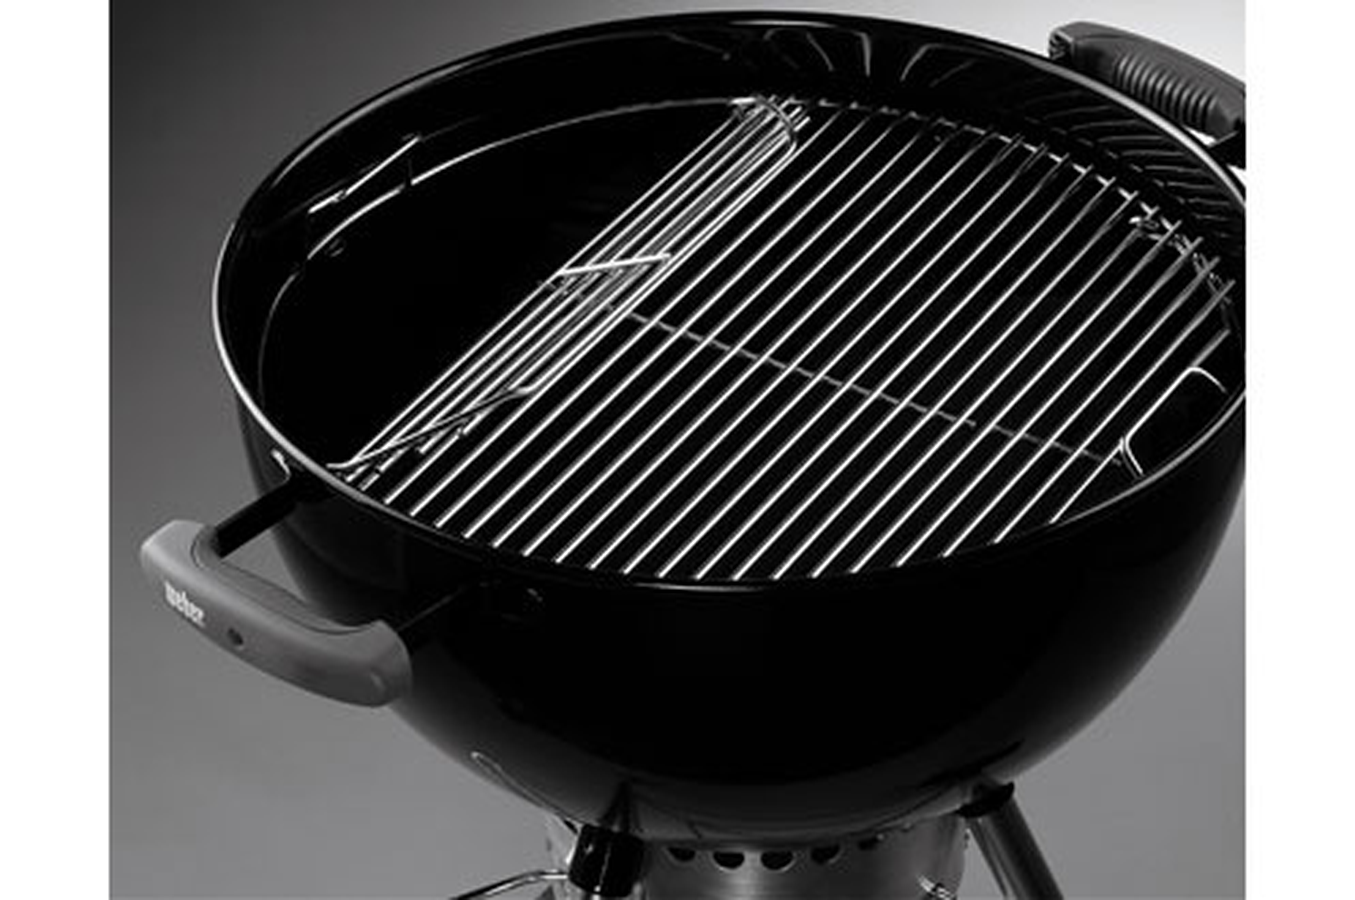 plancha weber great grille foyre weber pour barbecue. Black Bedroom Furniture Sets. Home Design Ideas